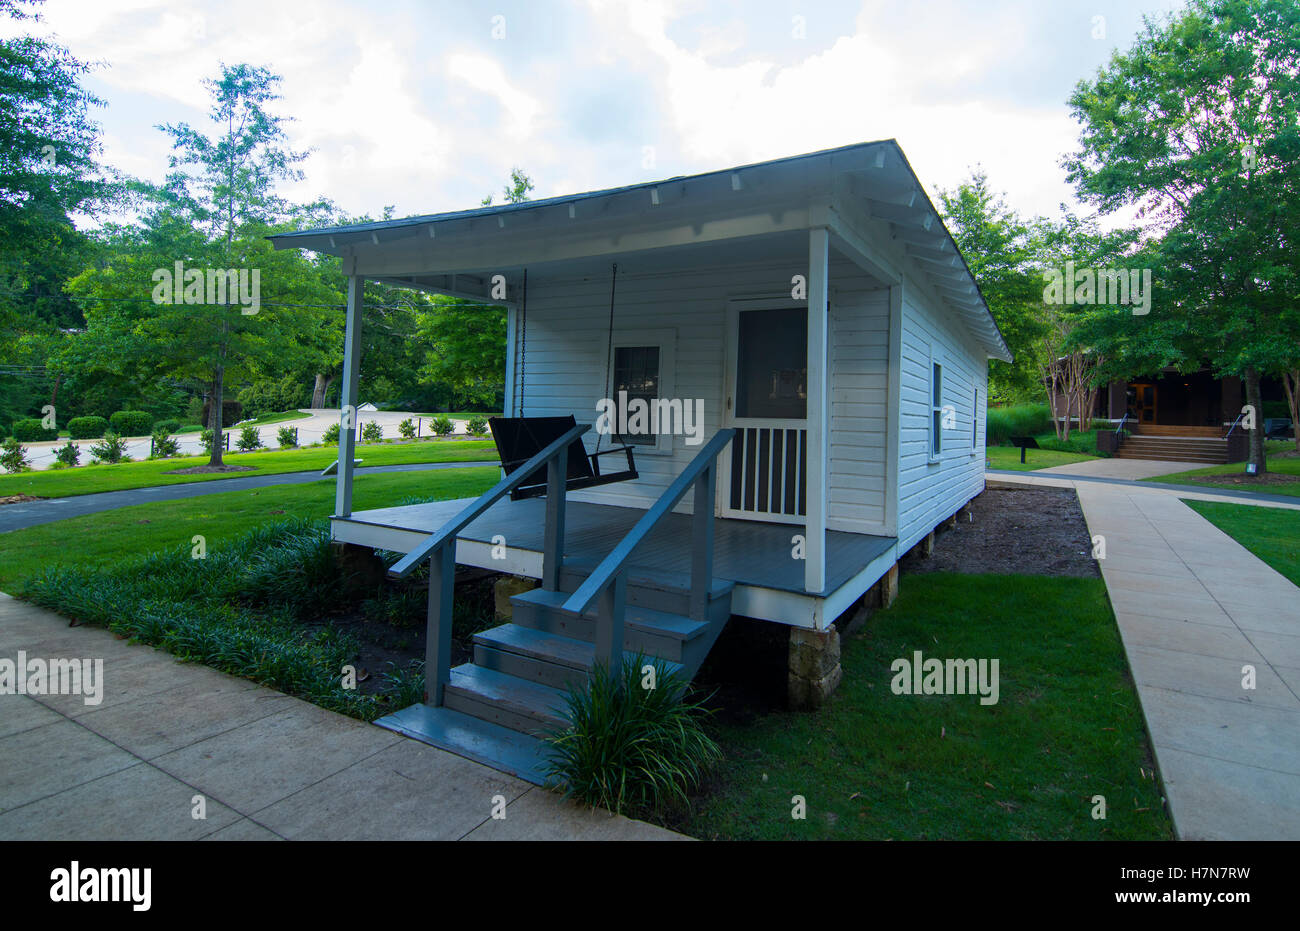 Tupelo Mississippi Elvis Presley birth home and porch in small town of the King of Pop Elvis - Stock Image